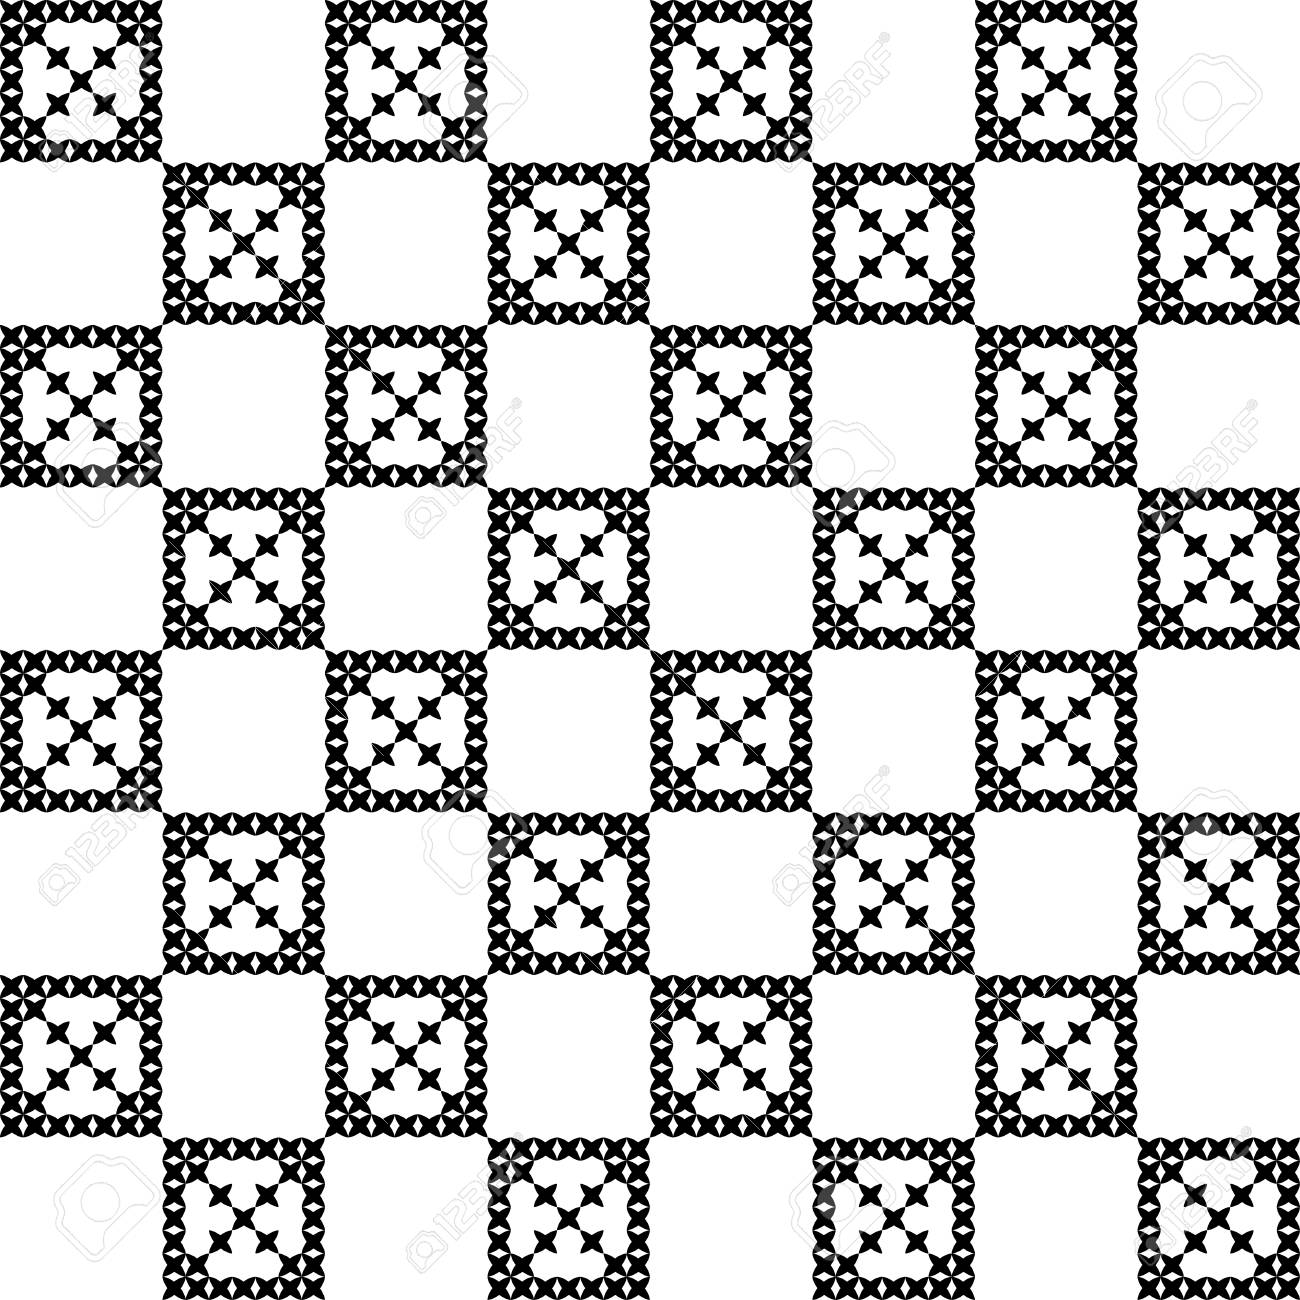 1300x1300 Seamless Embroidered Texture Of Abstract Flat Patterns, Cross